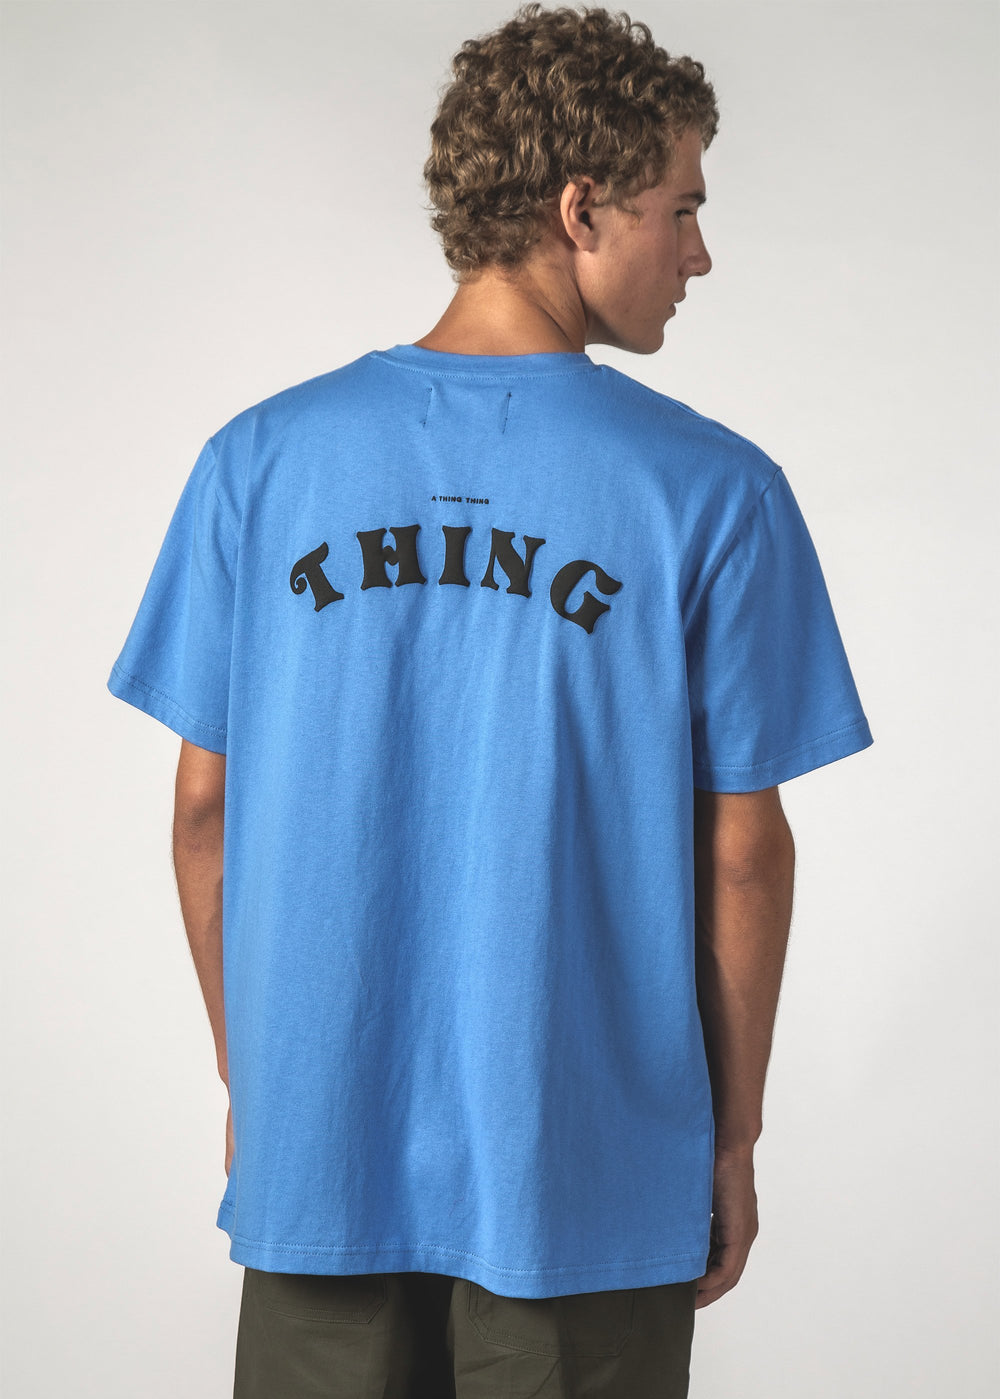 SALE - ATTT ARC SS TEE - Blue ATTT Arc